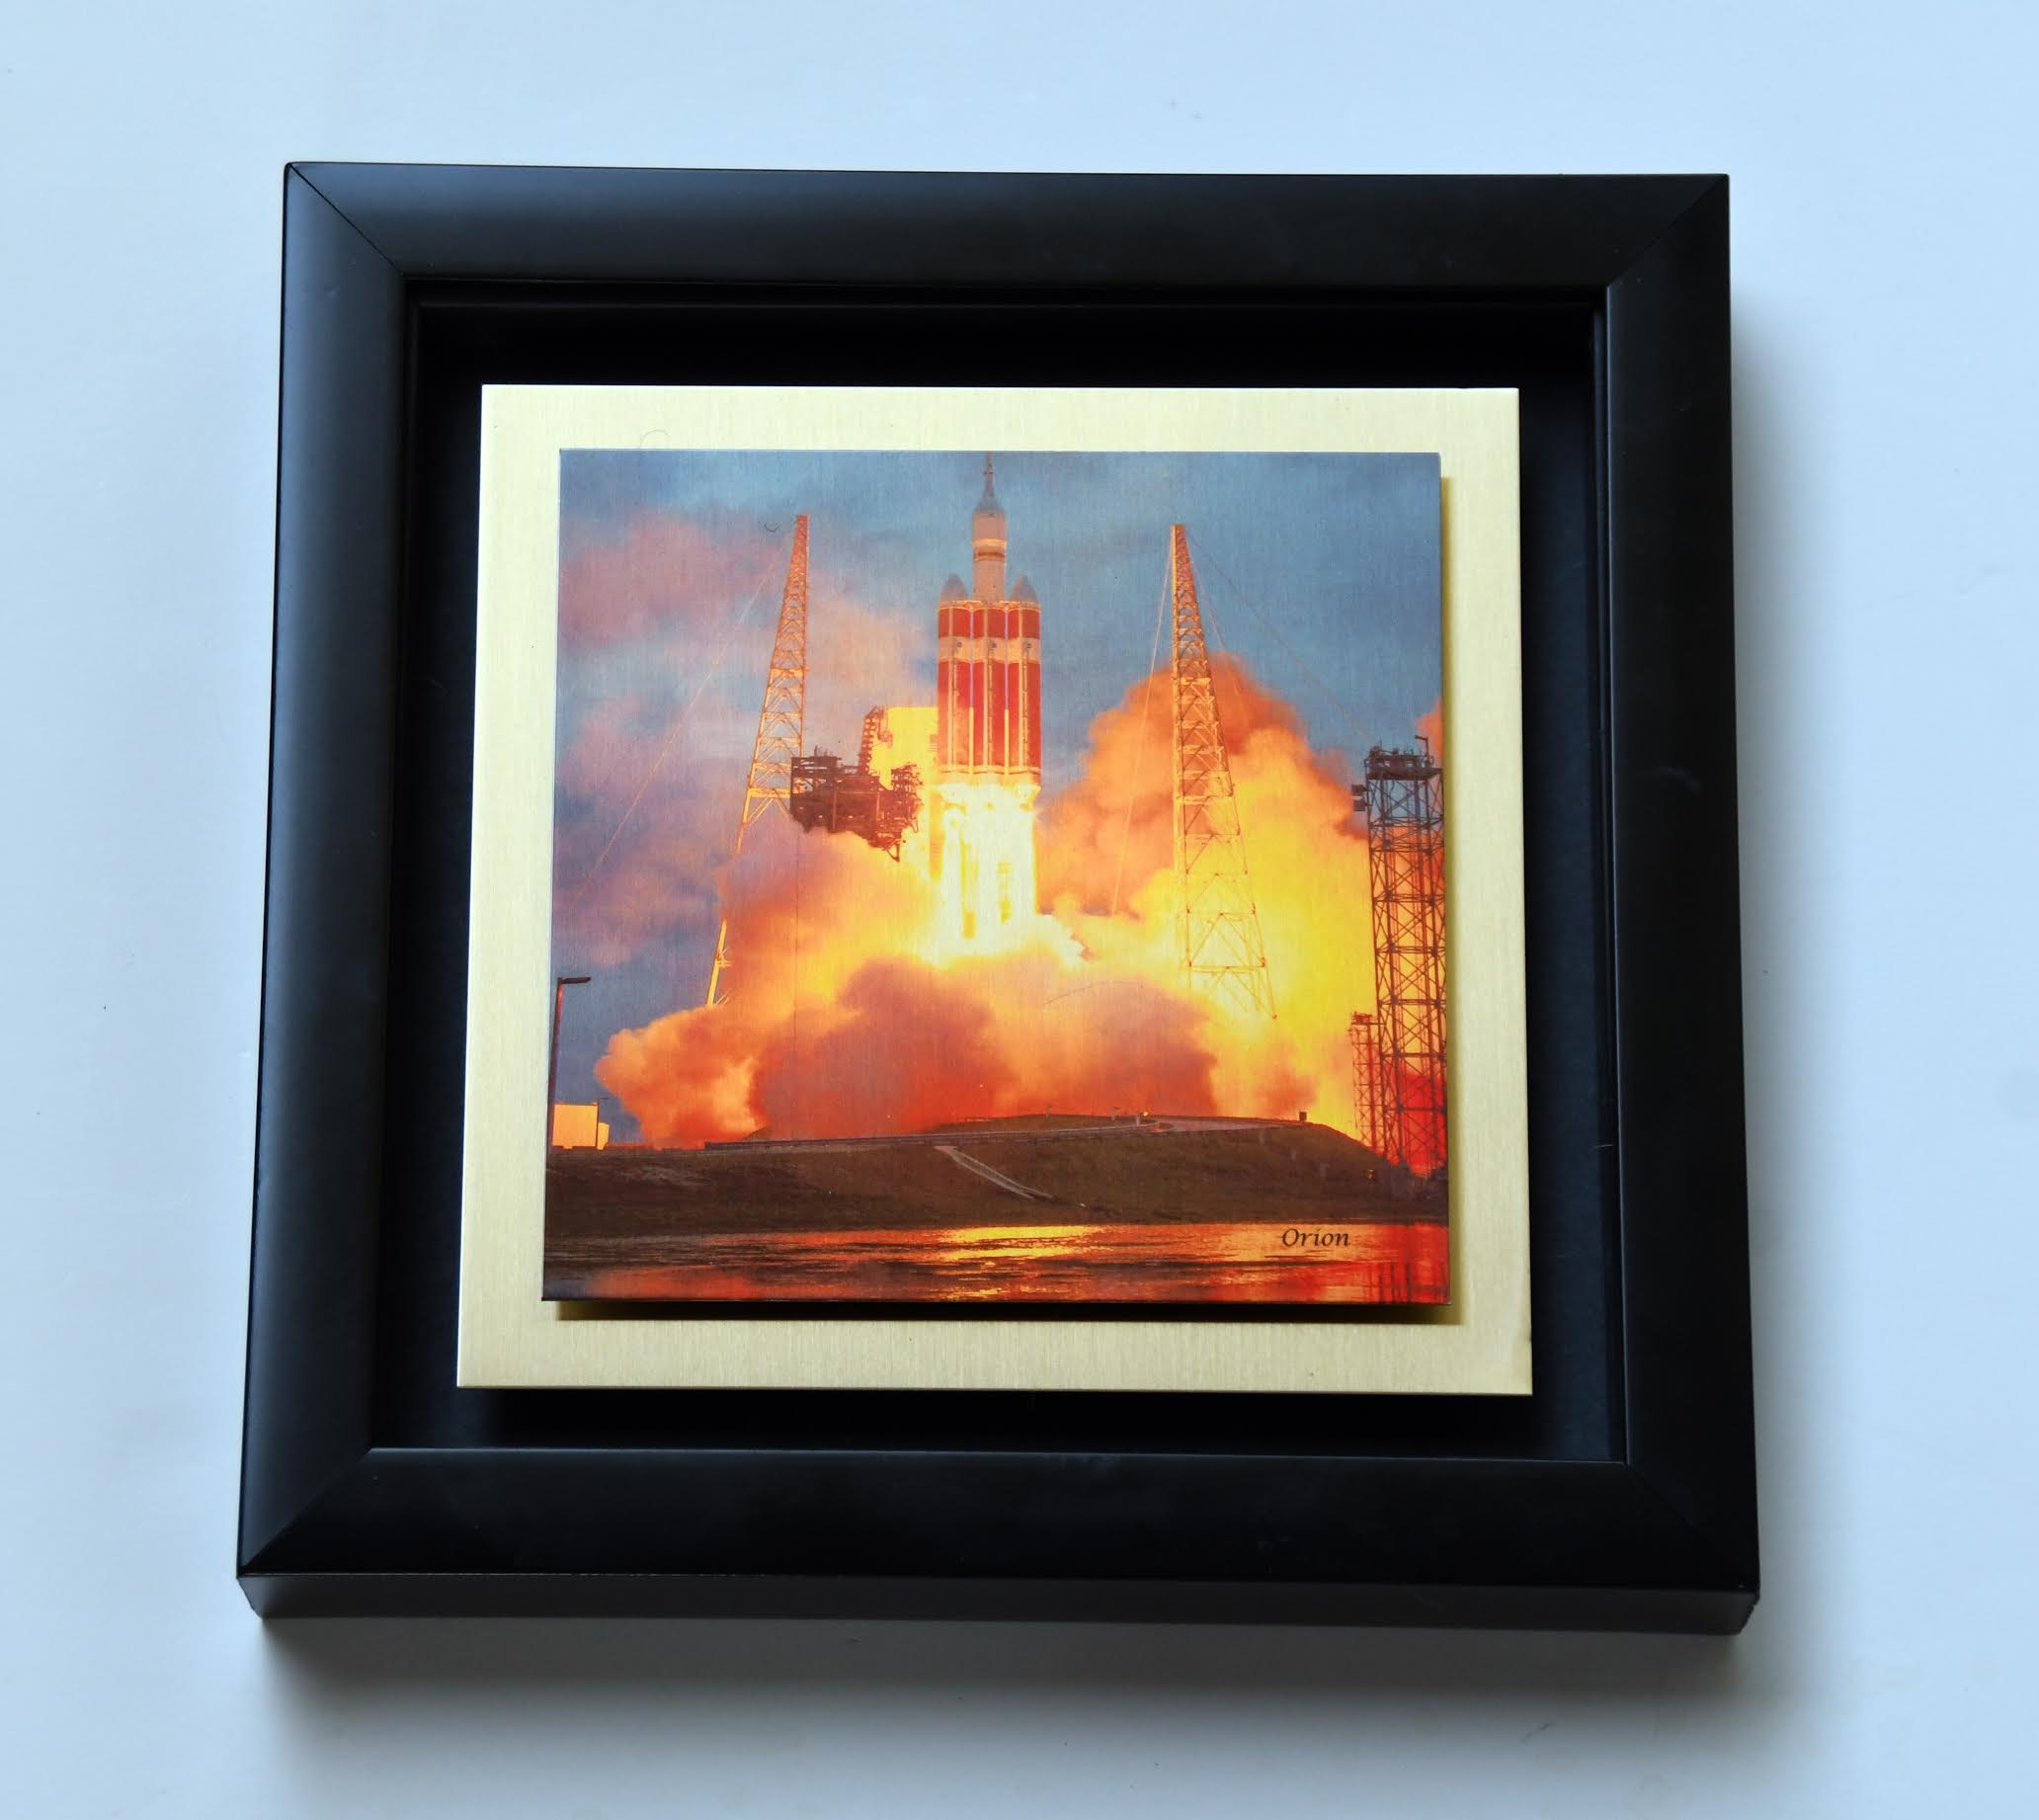 Orion 8x8 gold w shadowbox